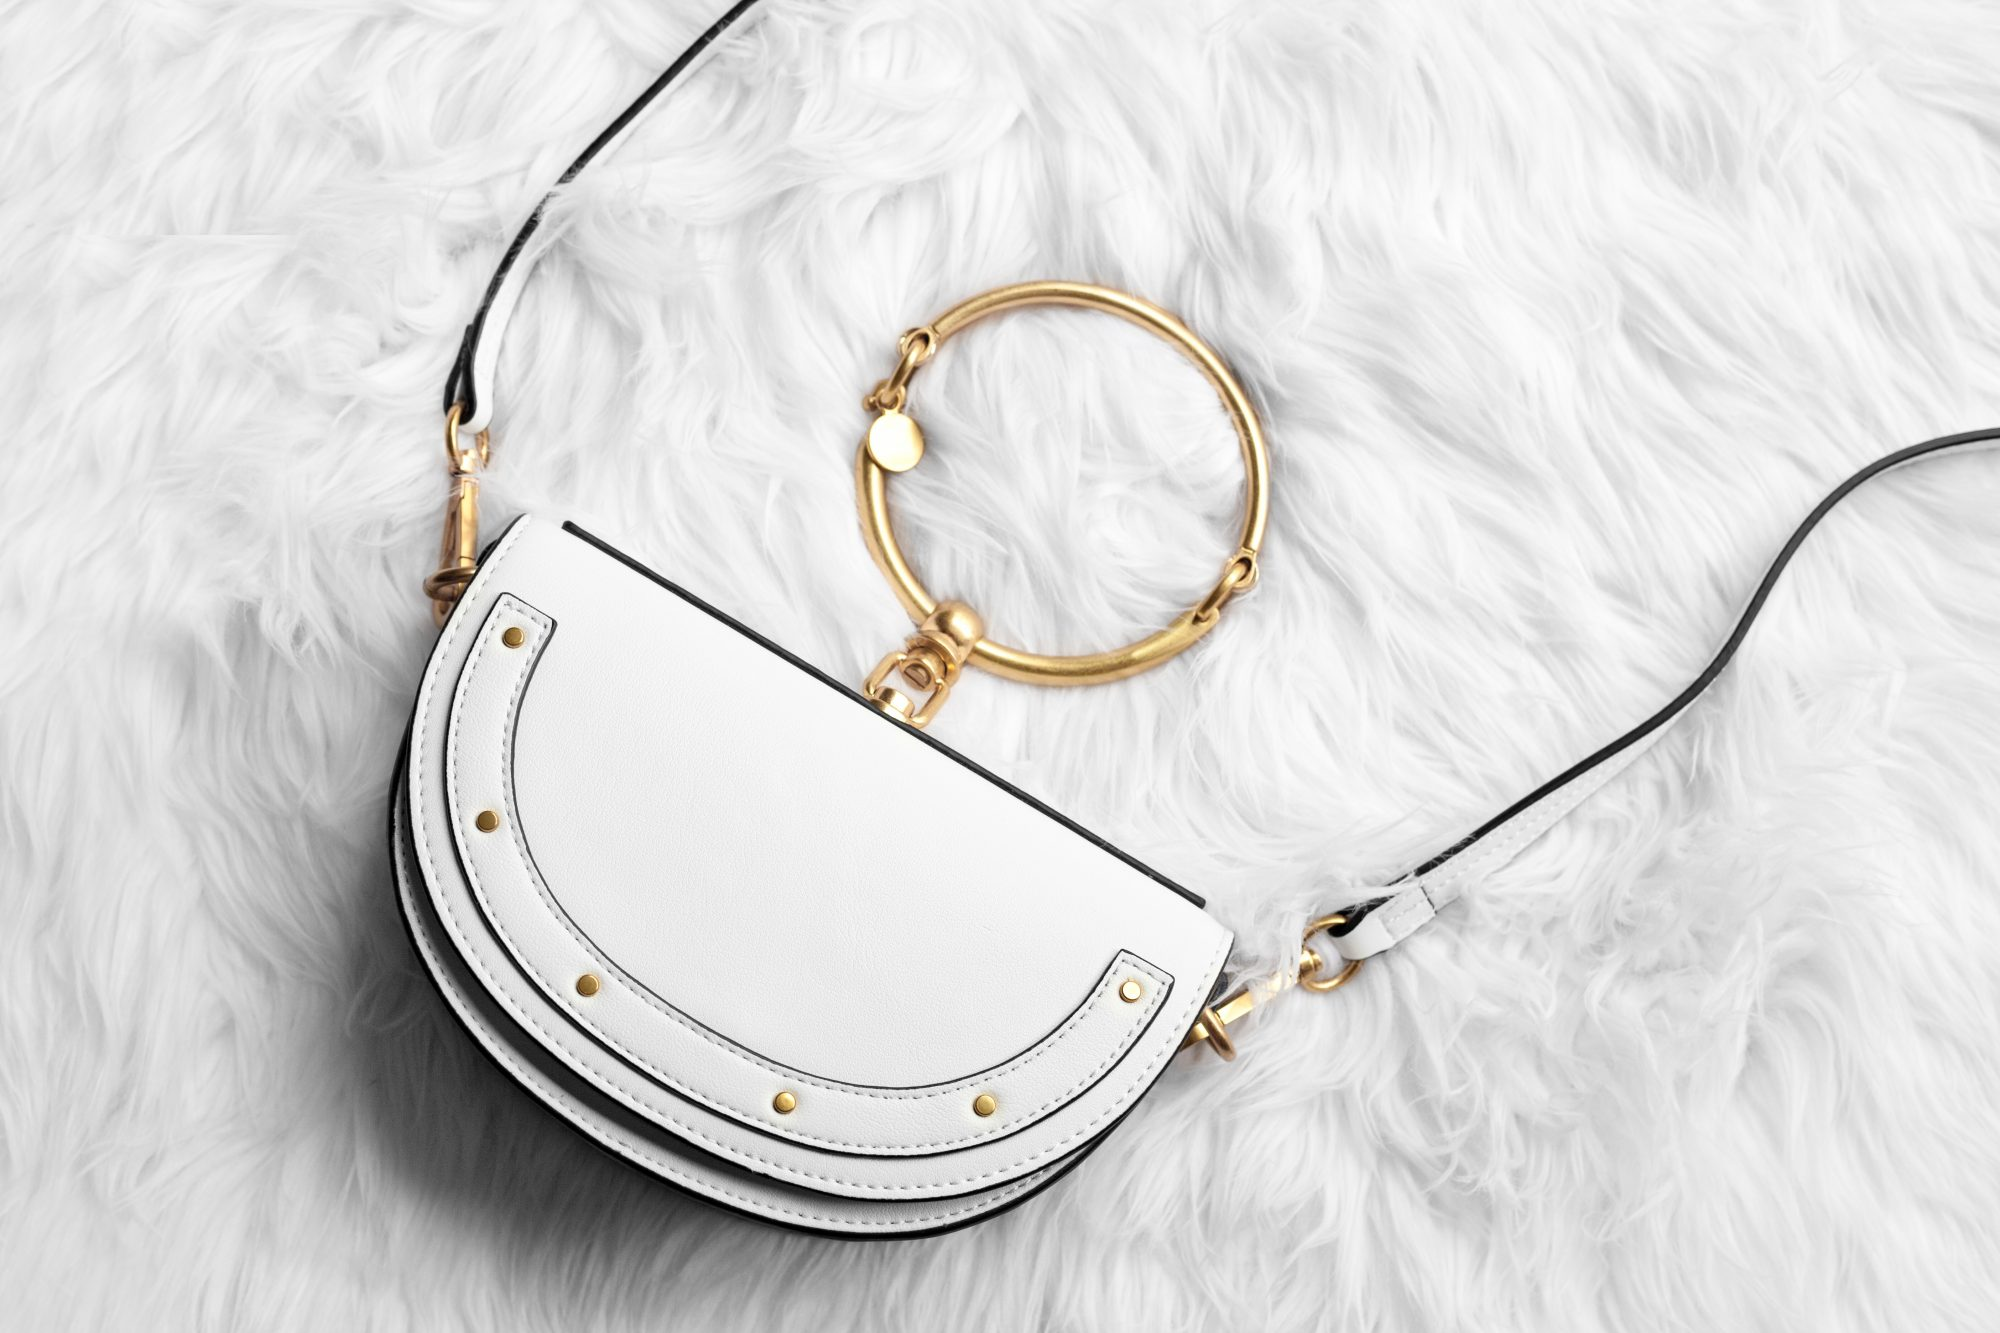 The ever-popular small Nile Minaudiere handbag by Chloe is priced at $1,450. I've found this gorgeous genuine leather designer dupe for just $44.63! Find out where to buy here. - www.theballeronabudget.com